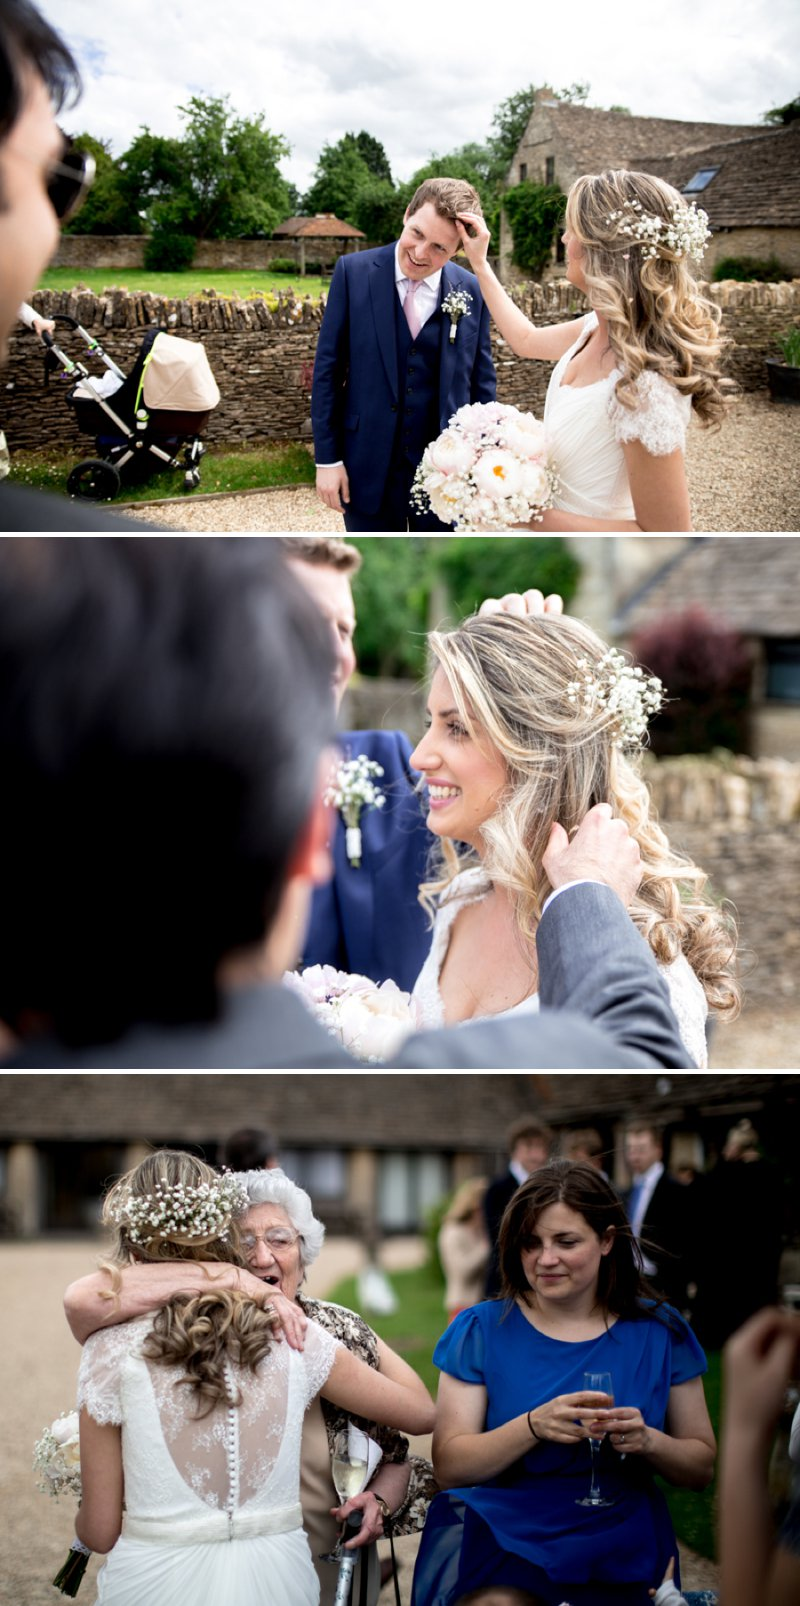 A Pretty Barn Wedding In The Cotswolds At The Great Tythe Barn With Bride In Pronovias And Groom In Reiss With Decor From The Vintage Hire And Images From Richard Jones Photography5